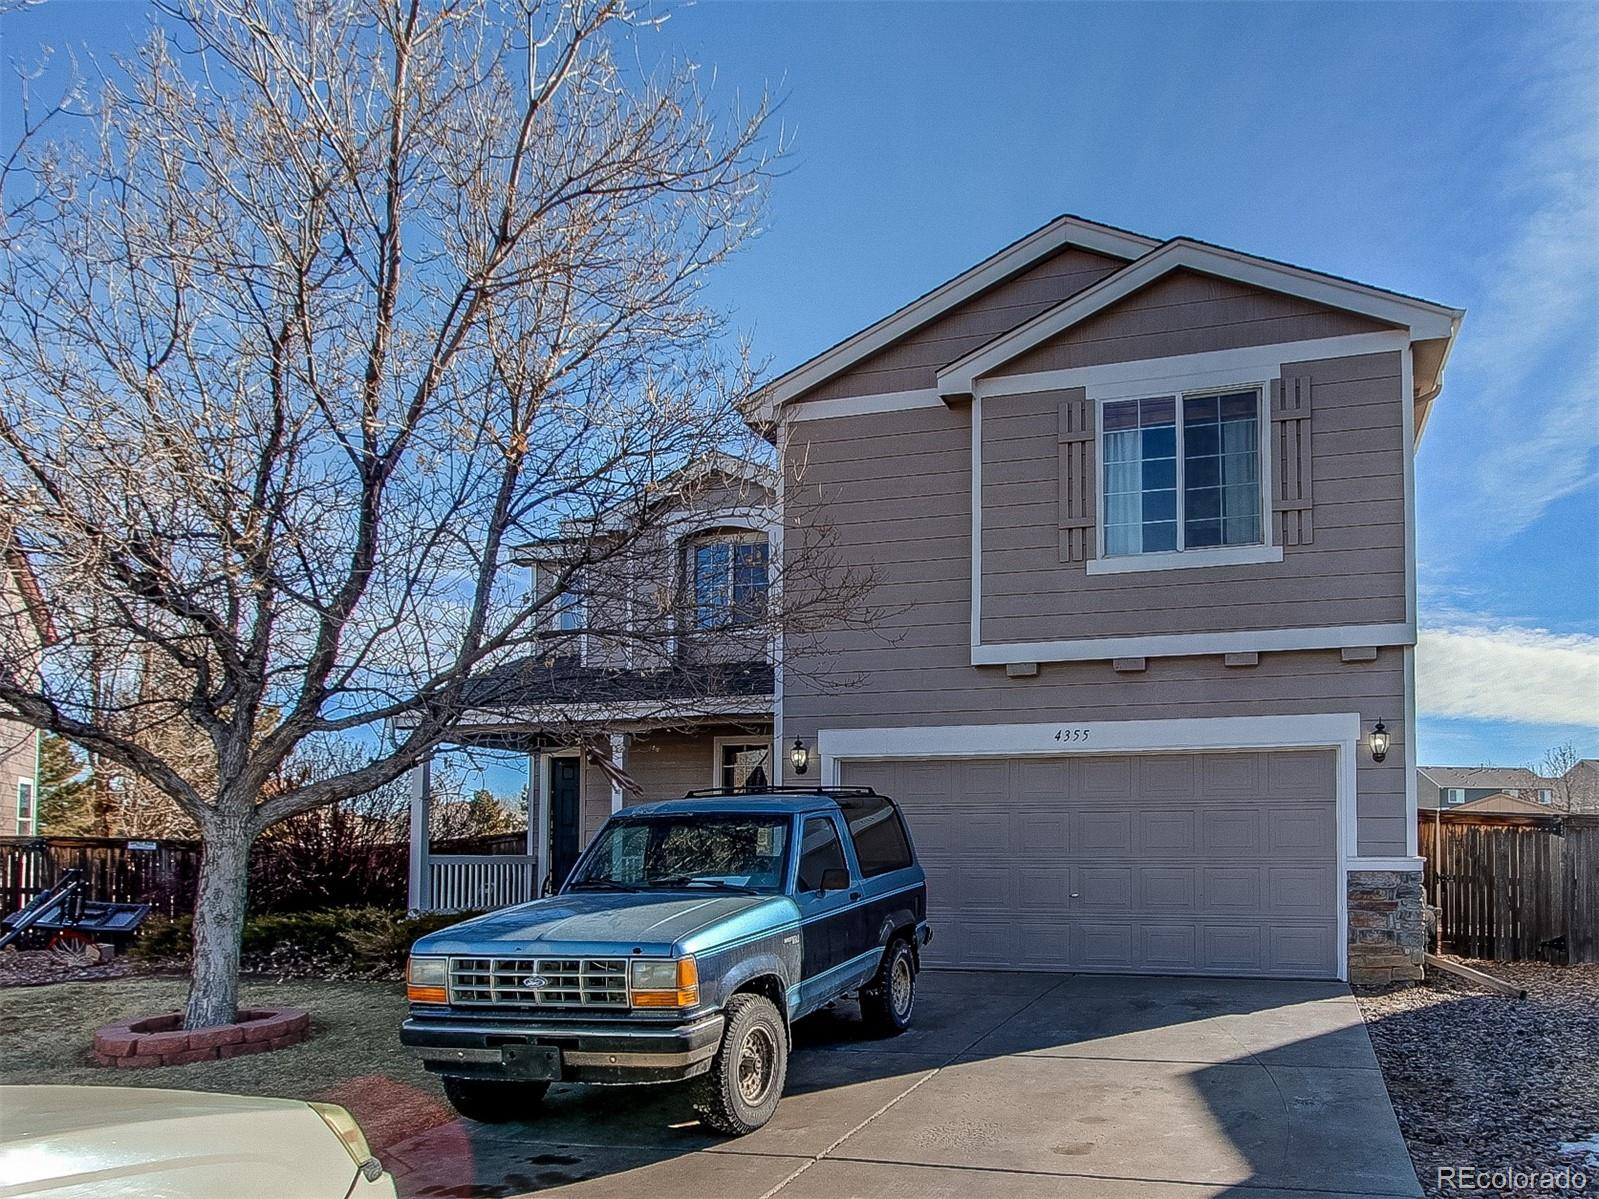 MLS# 4446594 - 2 - 4355 Chatswood Court, Highlands Ranch, CO 80126